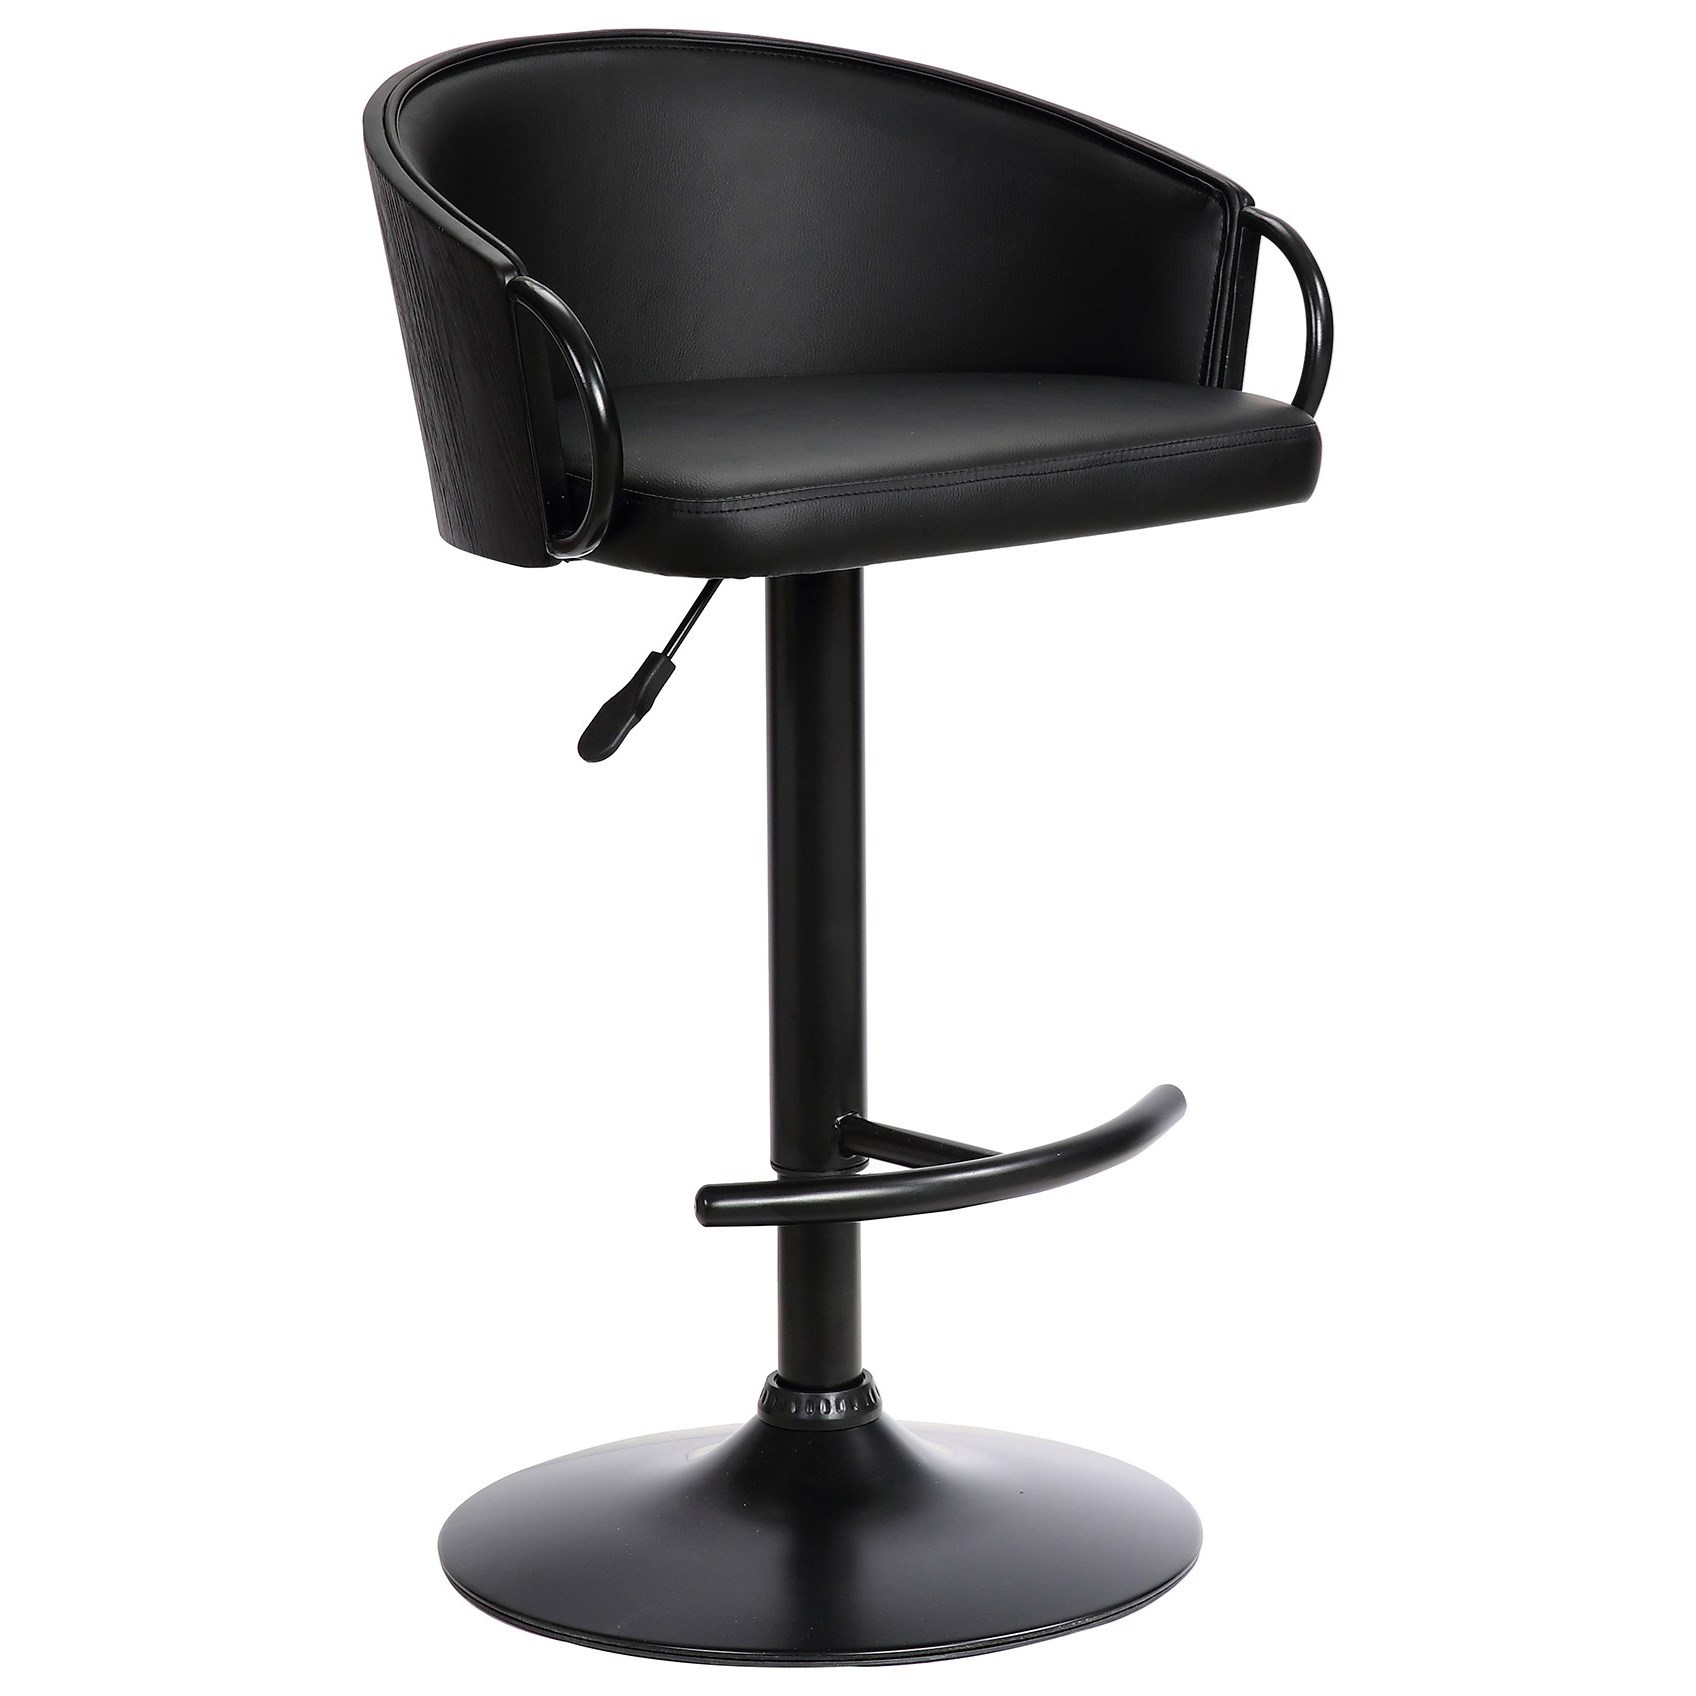 Montego Adj. Black Faux Leather Swivel Barstool at Sadler's Home Furnishings